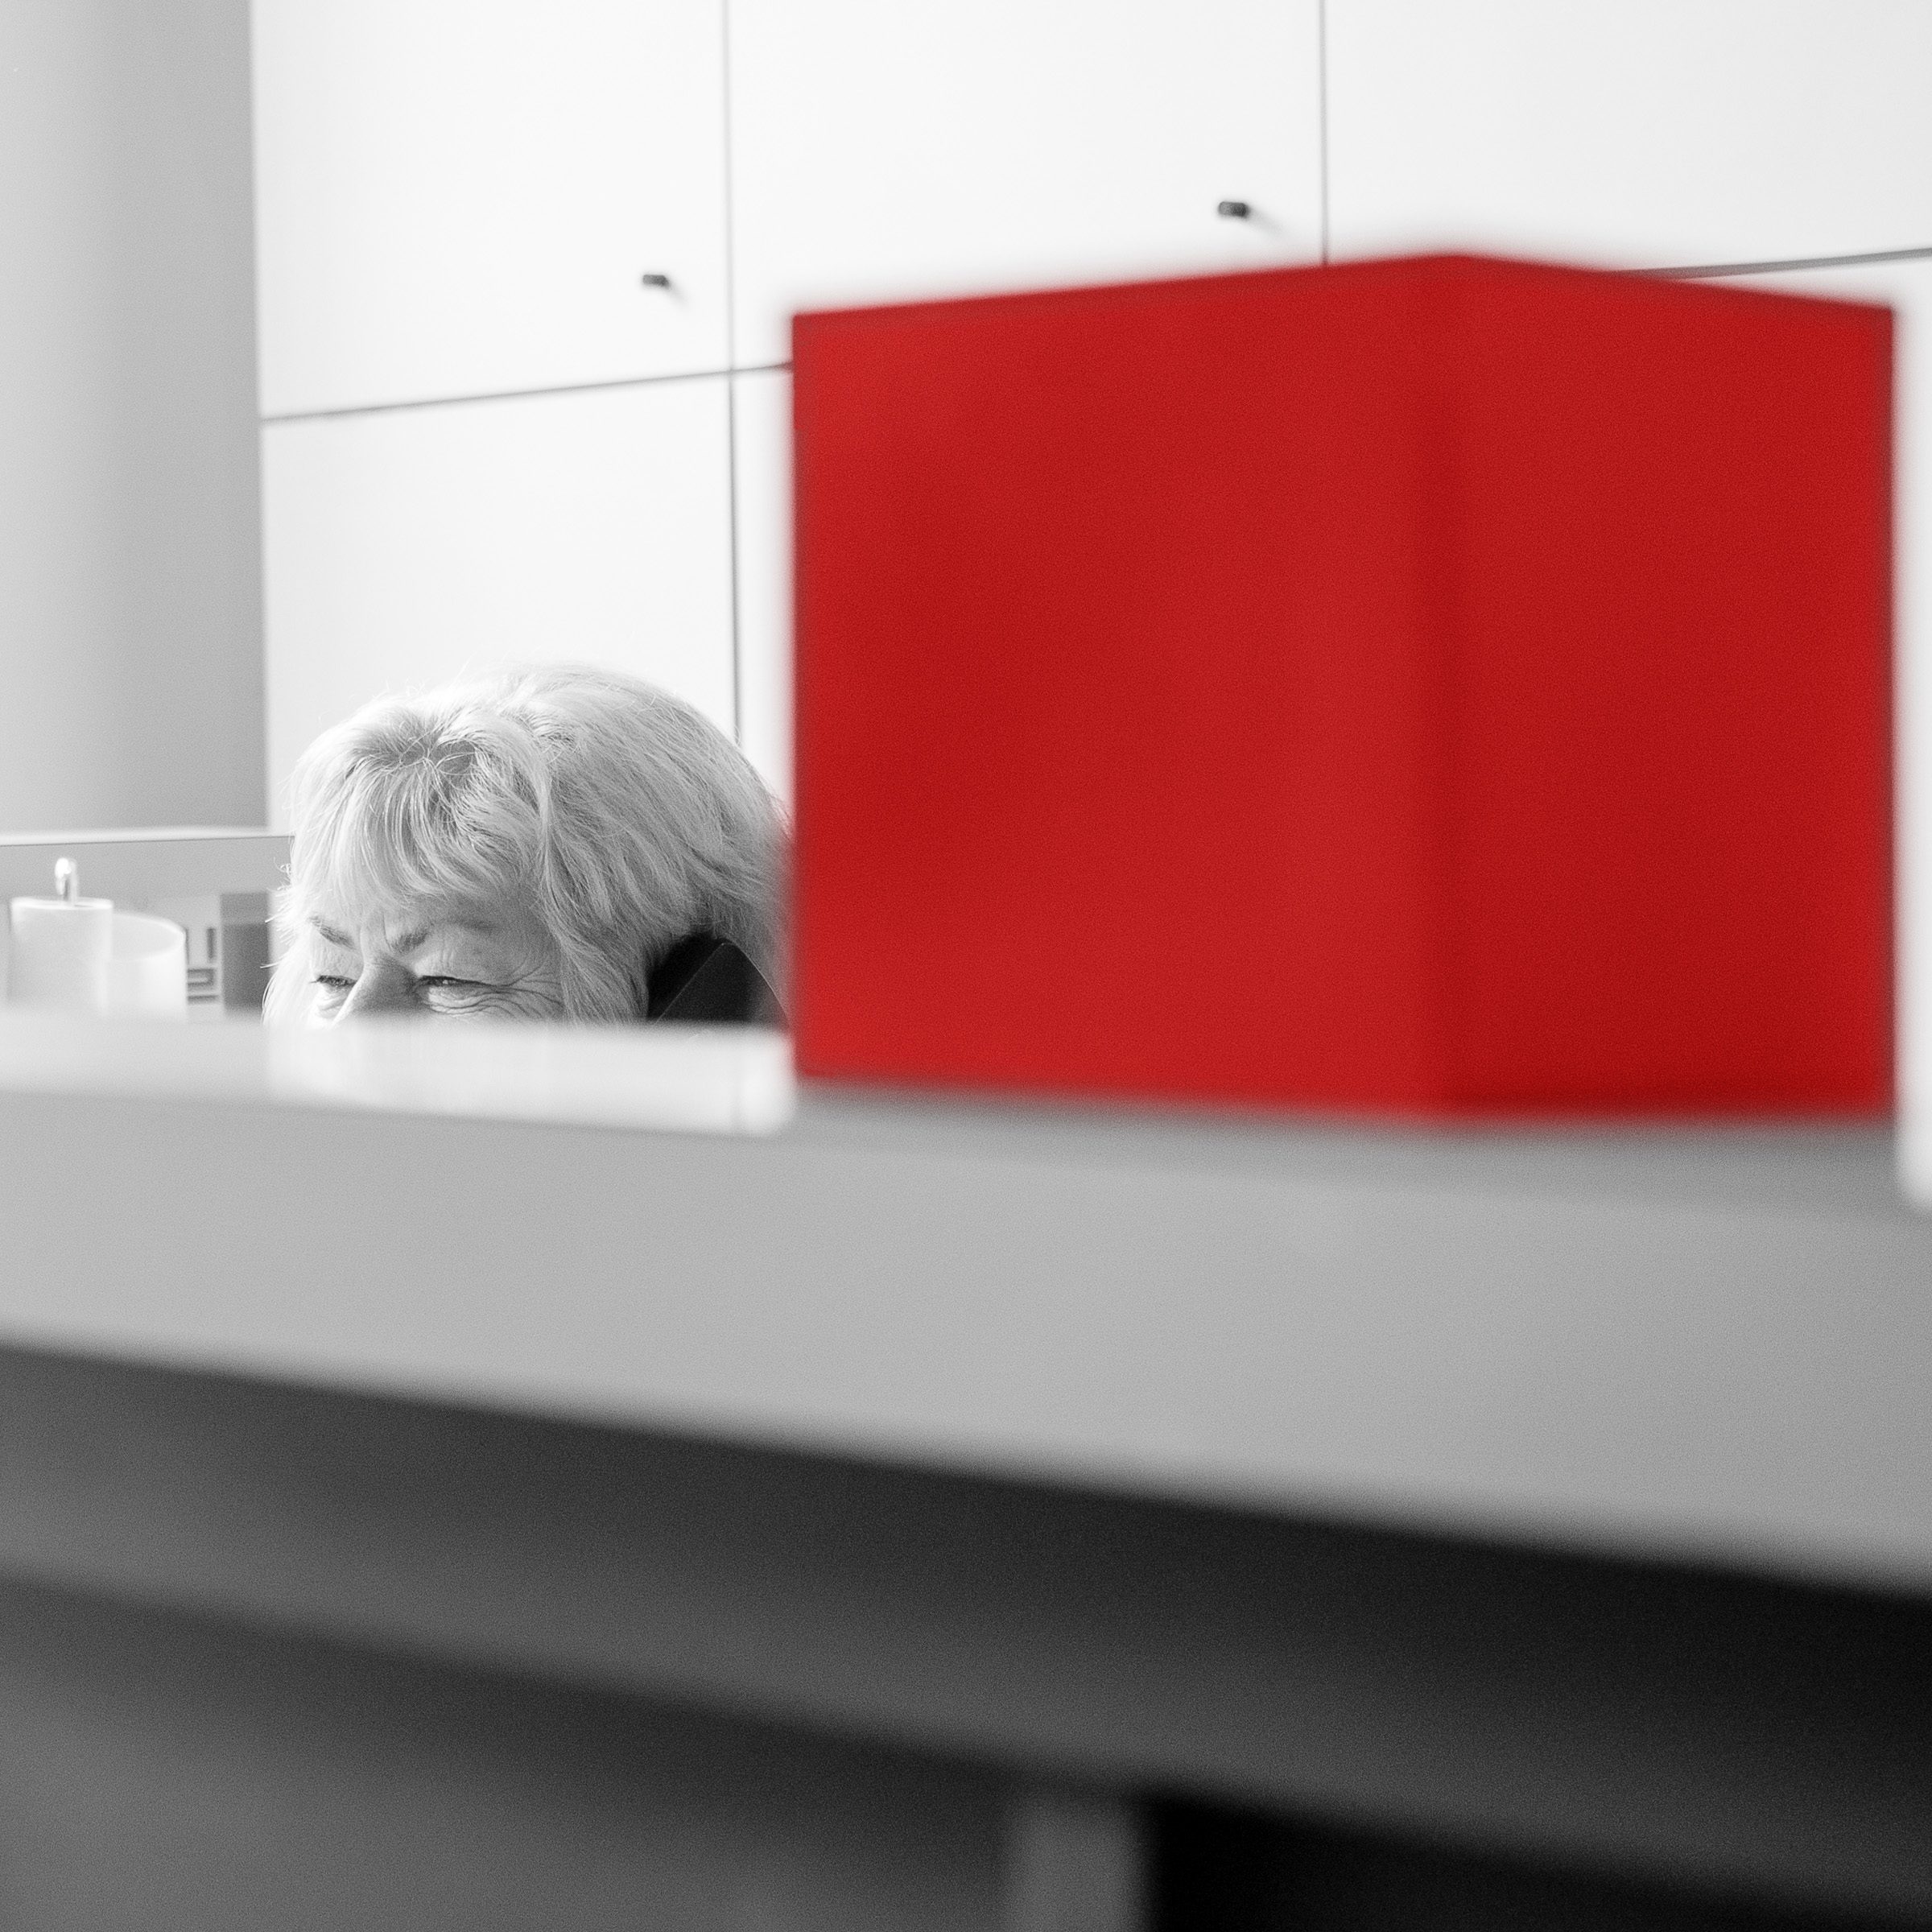 Donna Feetham in black and white, sitting at her desk, on the phone, with a bright red cube in the foreground